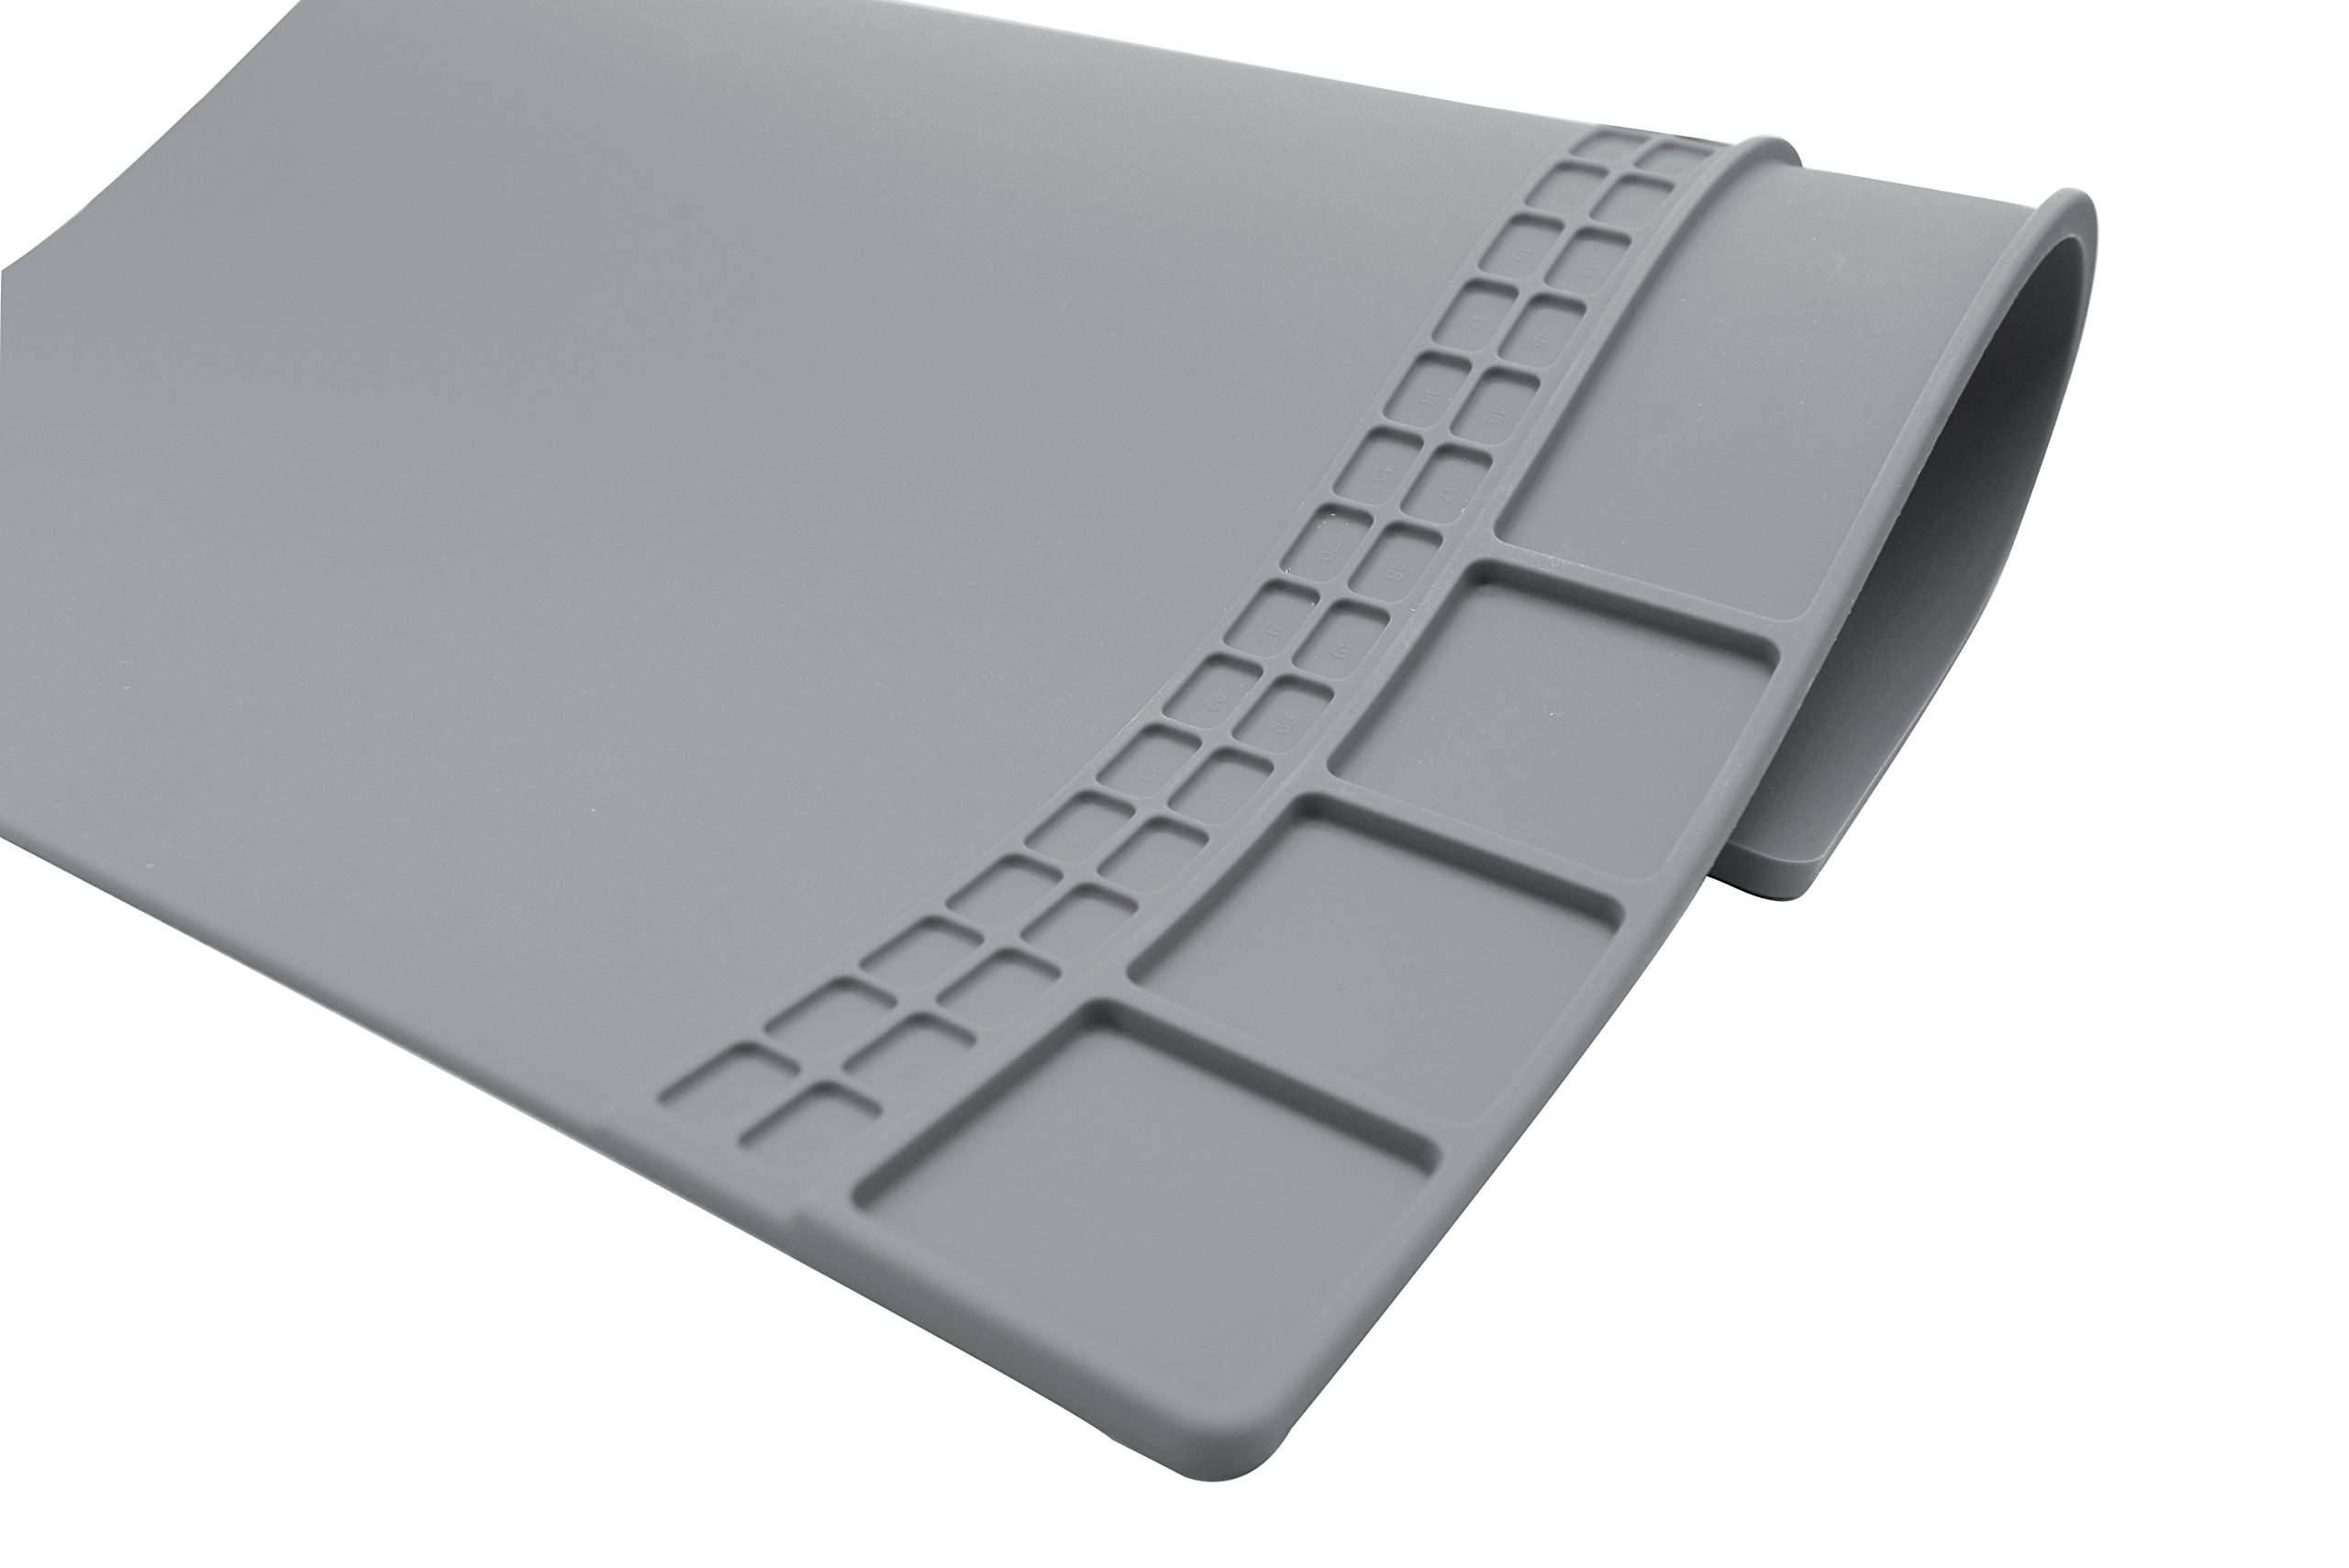 Large Soldering Mat Silicone work mat Heat Resistant,Heat Mat for Heat Hun Cell Phone, Repair Rework Surface Desk Electronics Repair Disassembly Welding Mat Gray color